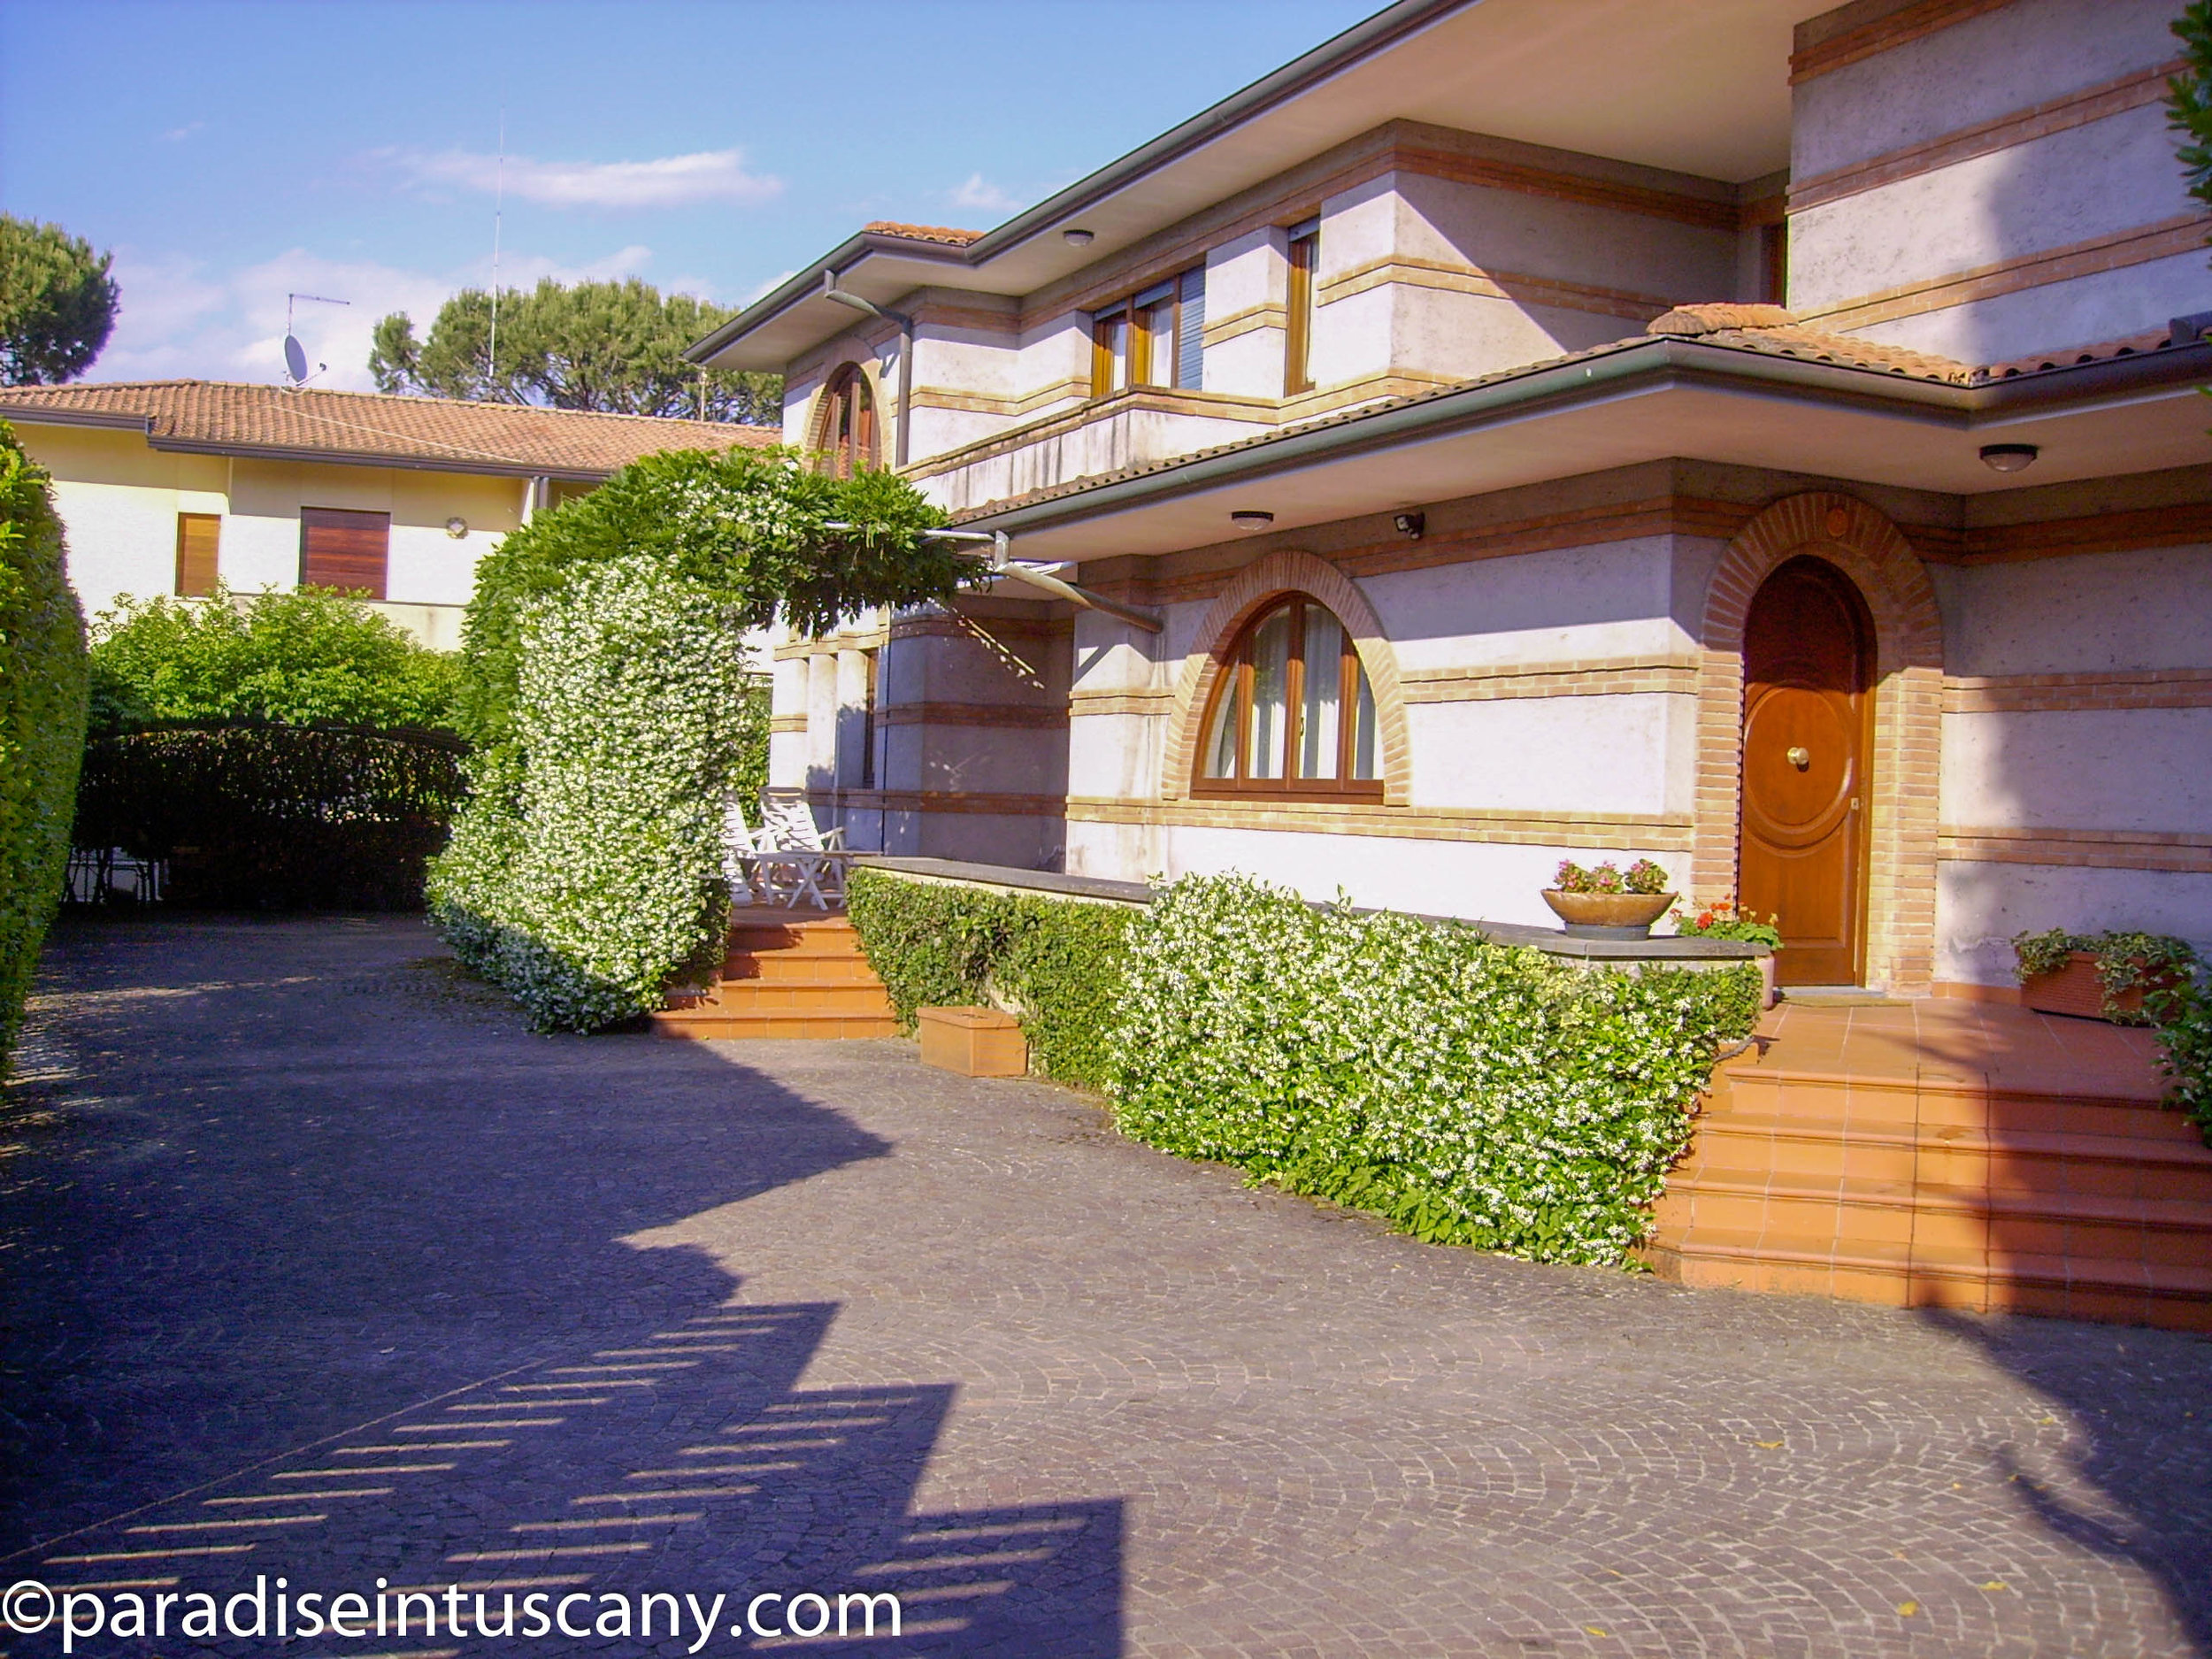 Elegant villa located in the wealthiest area of Forte dei Marmi, on the Versilian Coast